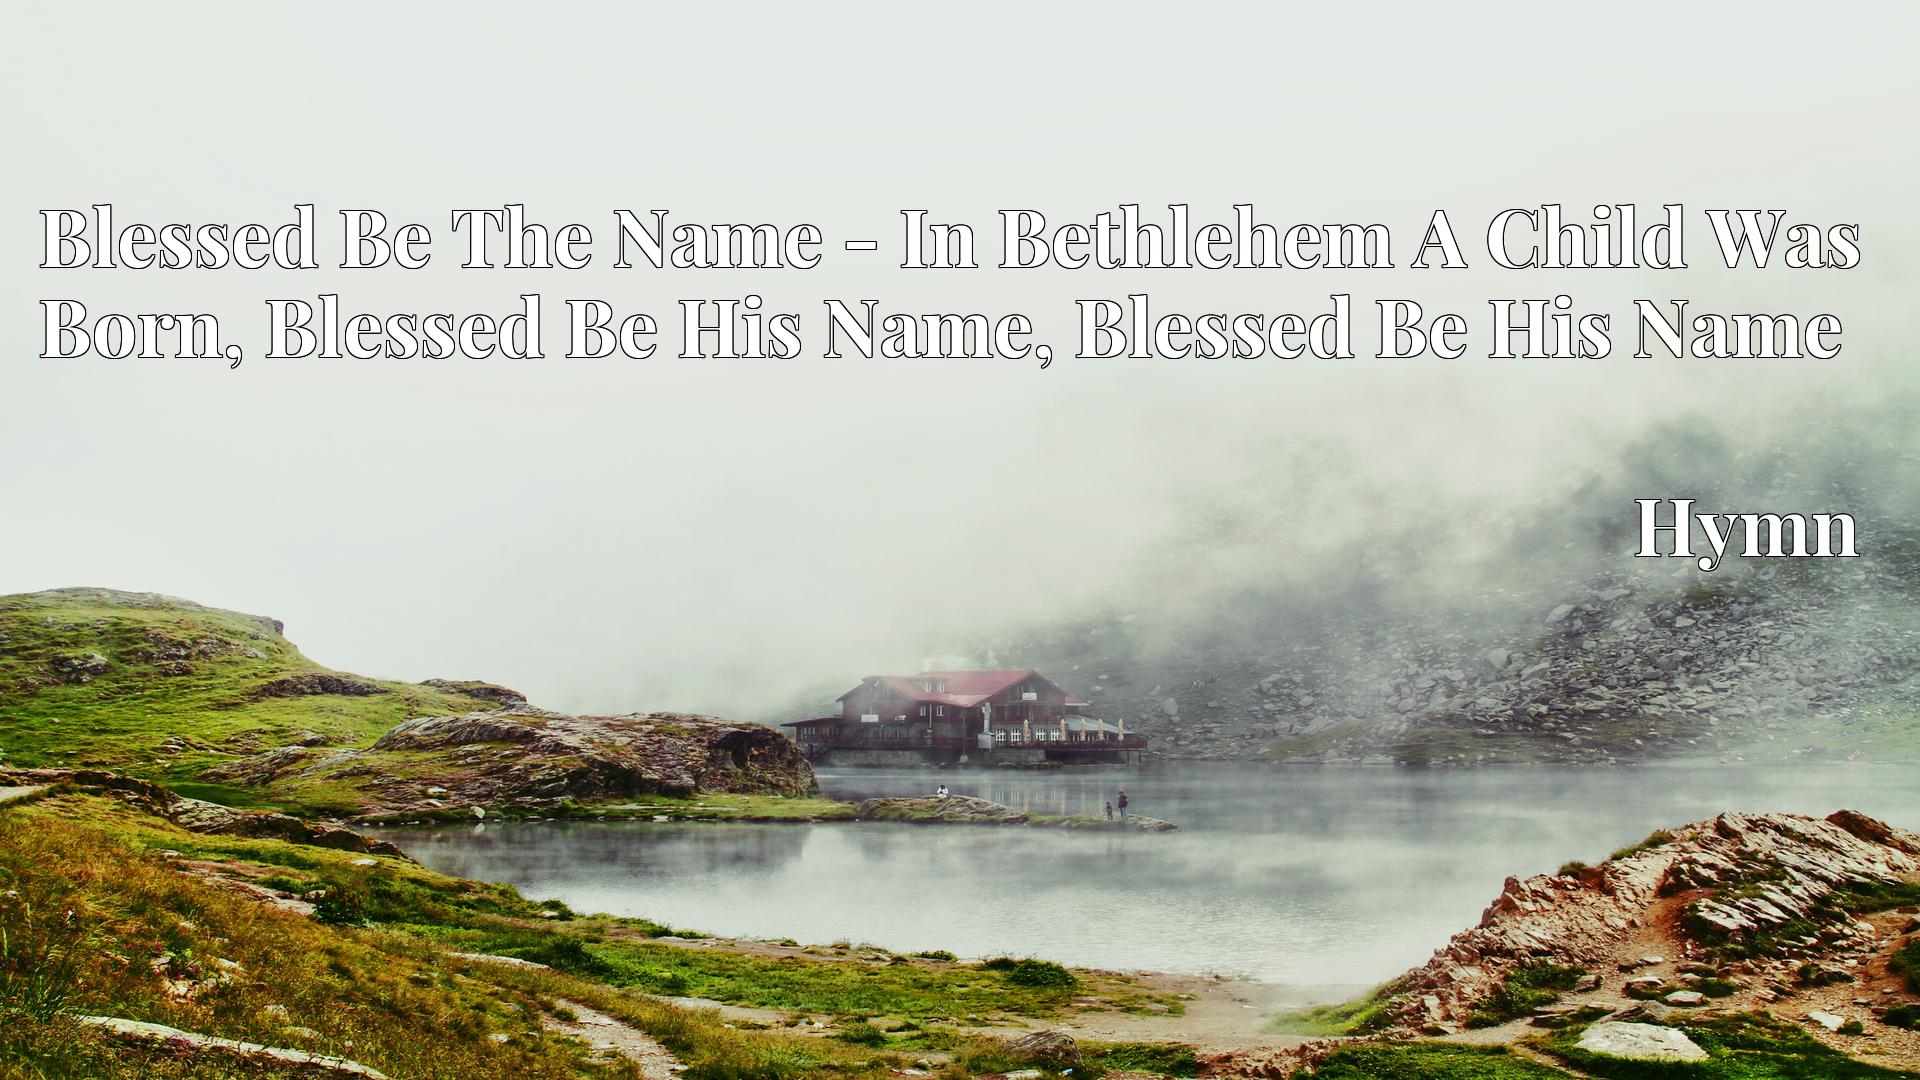 Blessed Be The Name - In Bethlehem A Child Was Born, Blessed Be His Name, Blessed Be His Name - Hymn